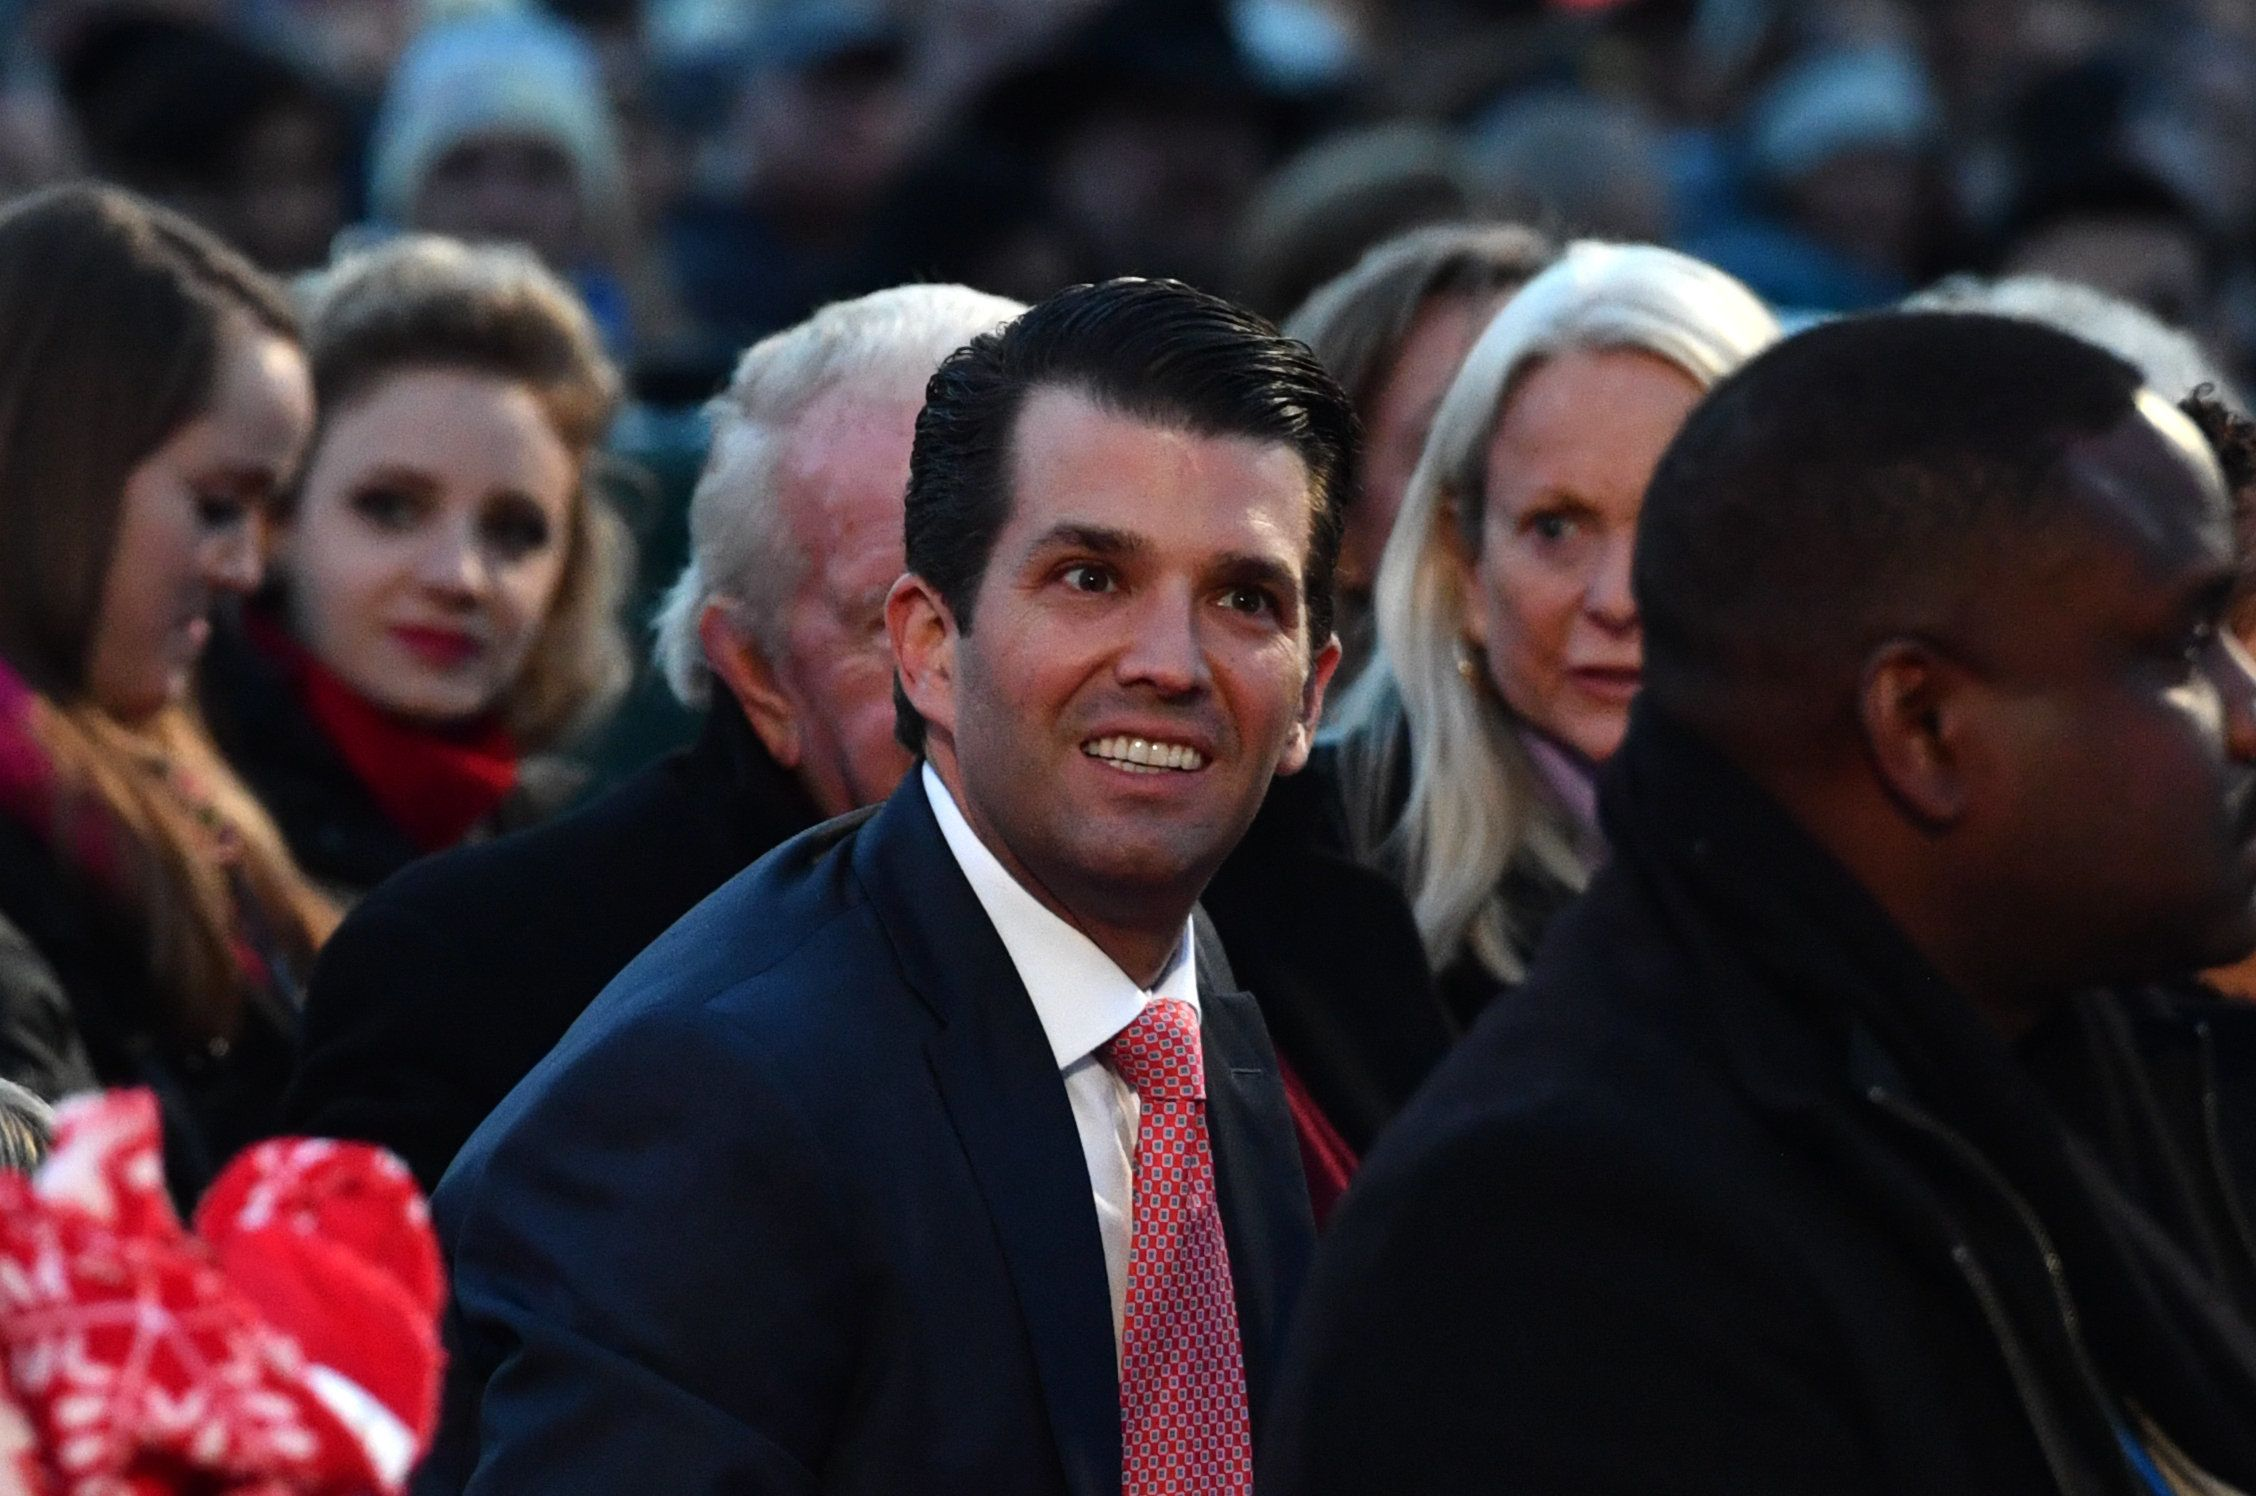 Donald Trump Jr. smiles as he waits for the arrival of US President Donald Trump before the 95th annual National Christmas Tree Lighting ceremony at the Ellipse in President's Park near the White House in Washington, DC on November 30, 2017. / AFP PHOTO / Nicholas Kamm        (Photo credit should read NICHOLAS KAMM/AFP/Getty Images)